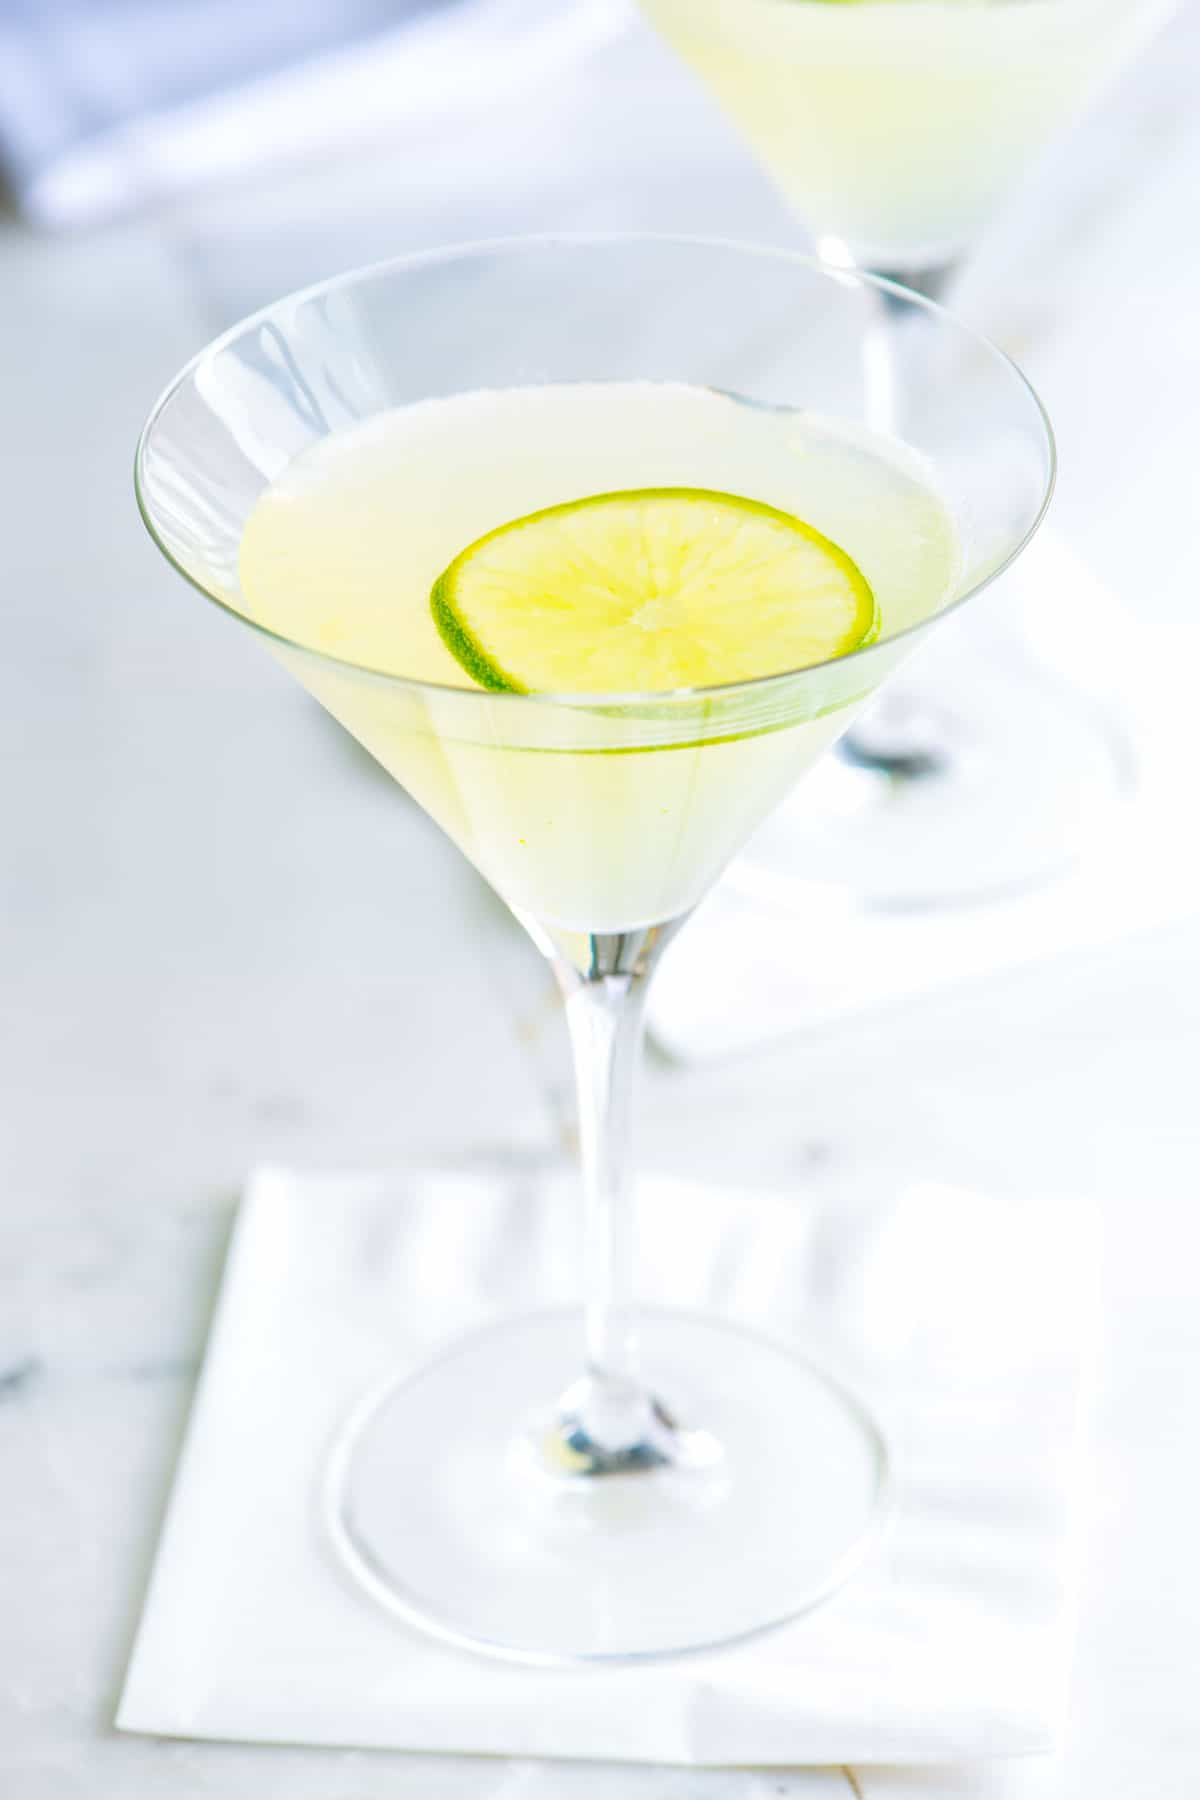 How to Make a Vodka Gimlet From Scratch